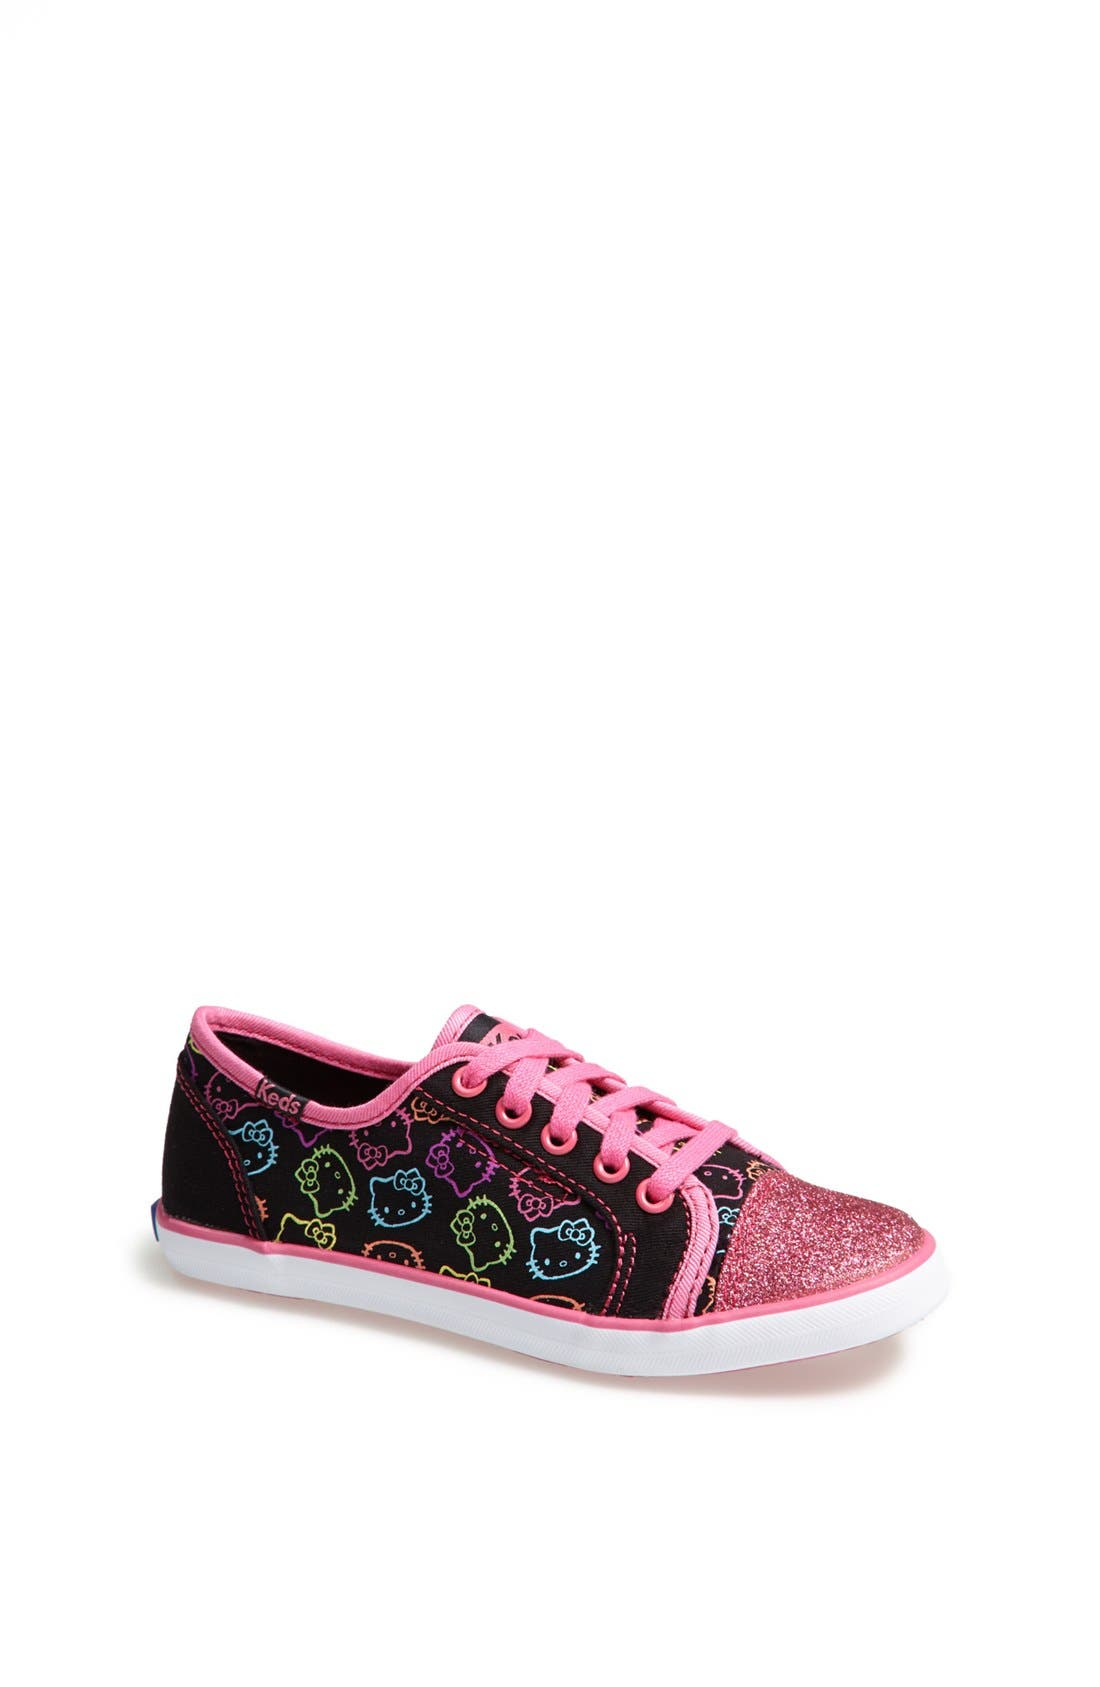 Alternate Image 1 Selected - Keds 'Hello Kitty® - Rally' Sneaker (Toddler, Little Kid & Big Kid)